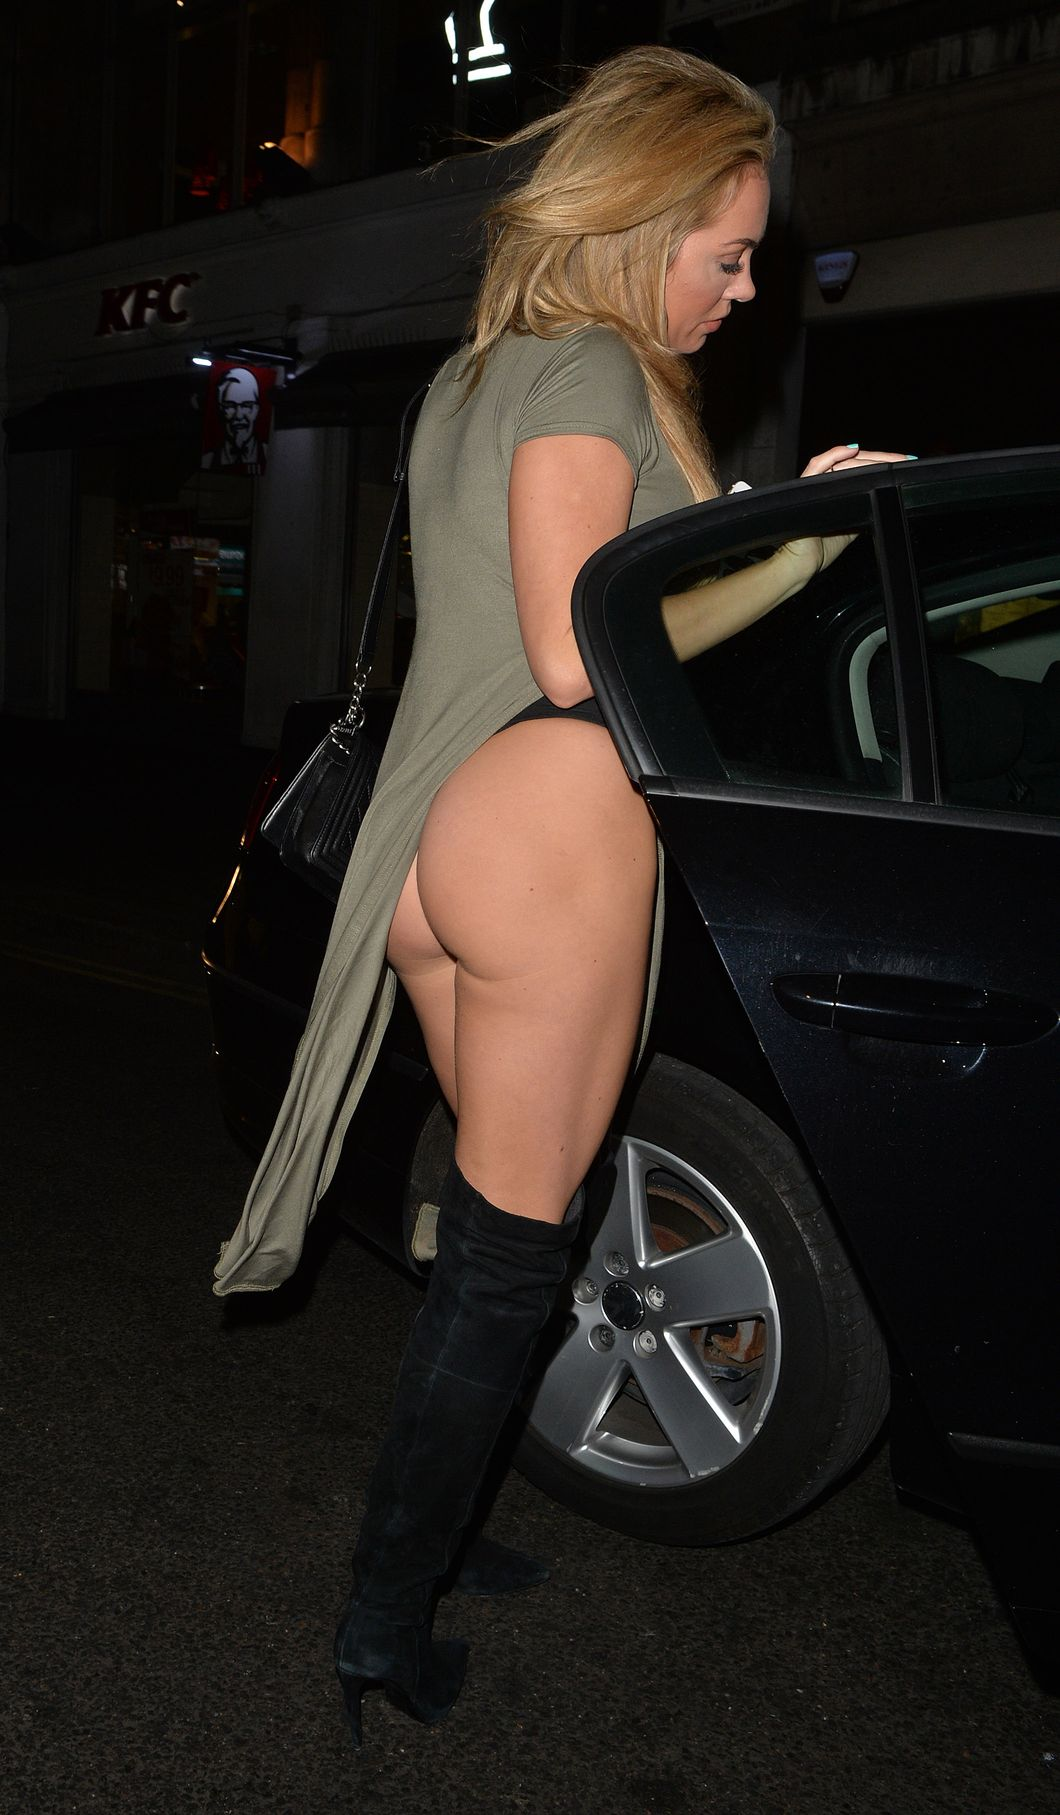 Ass Of Aisleyne Horgan-wa...